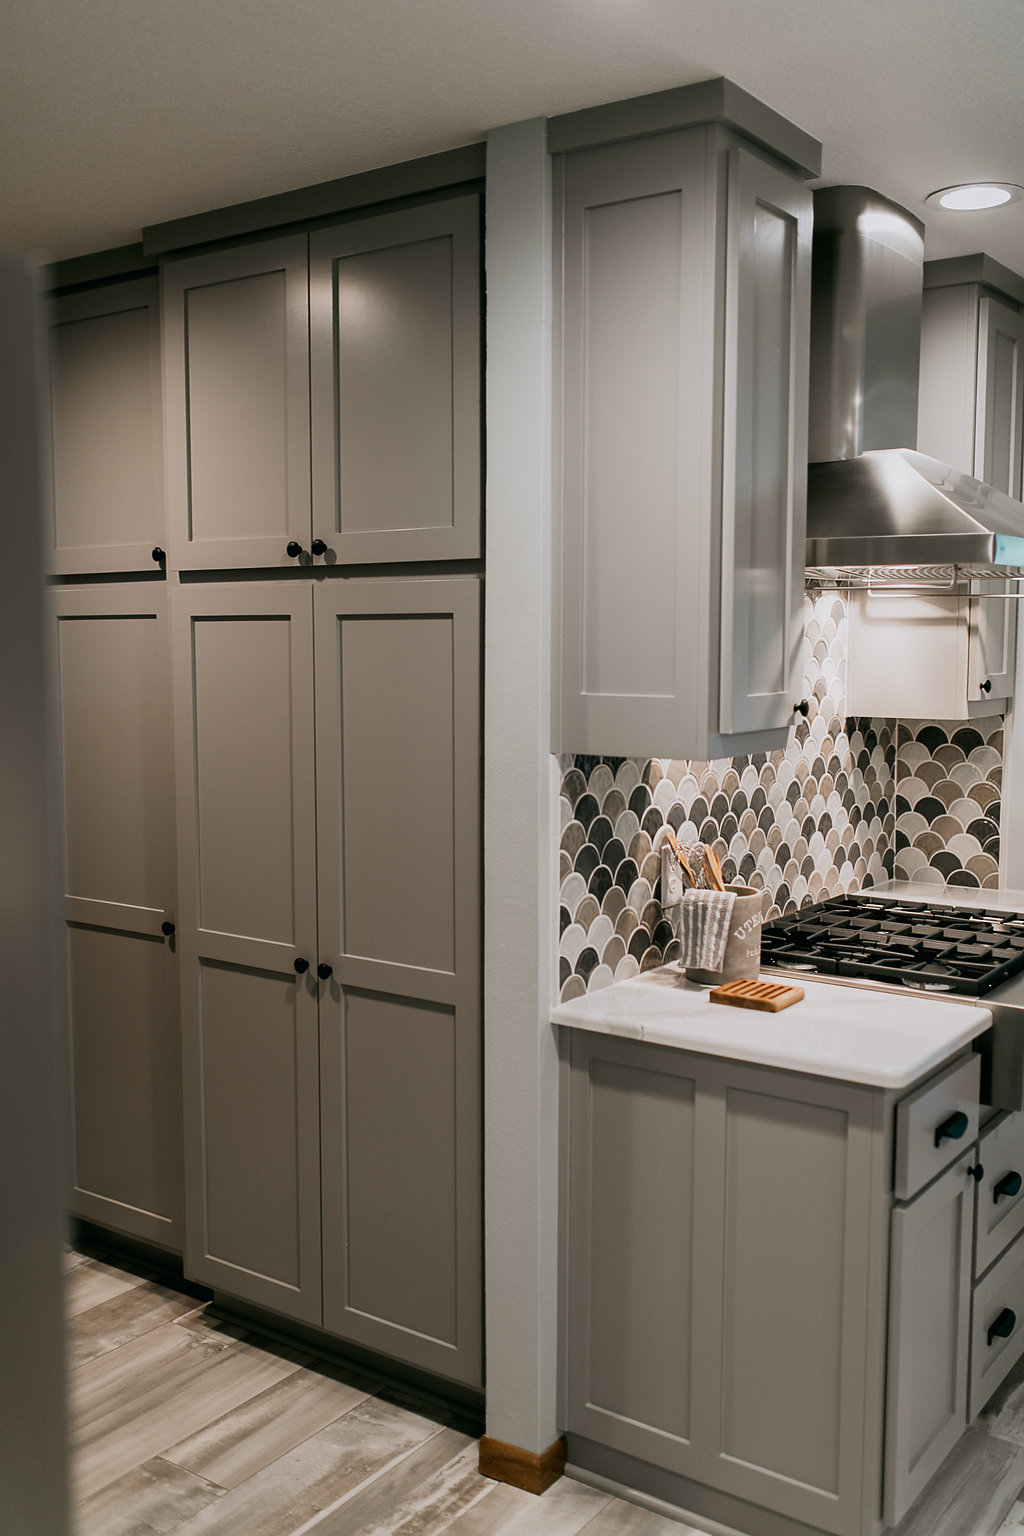 Grey cabinets, pantry, in contemporary kitchen